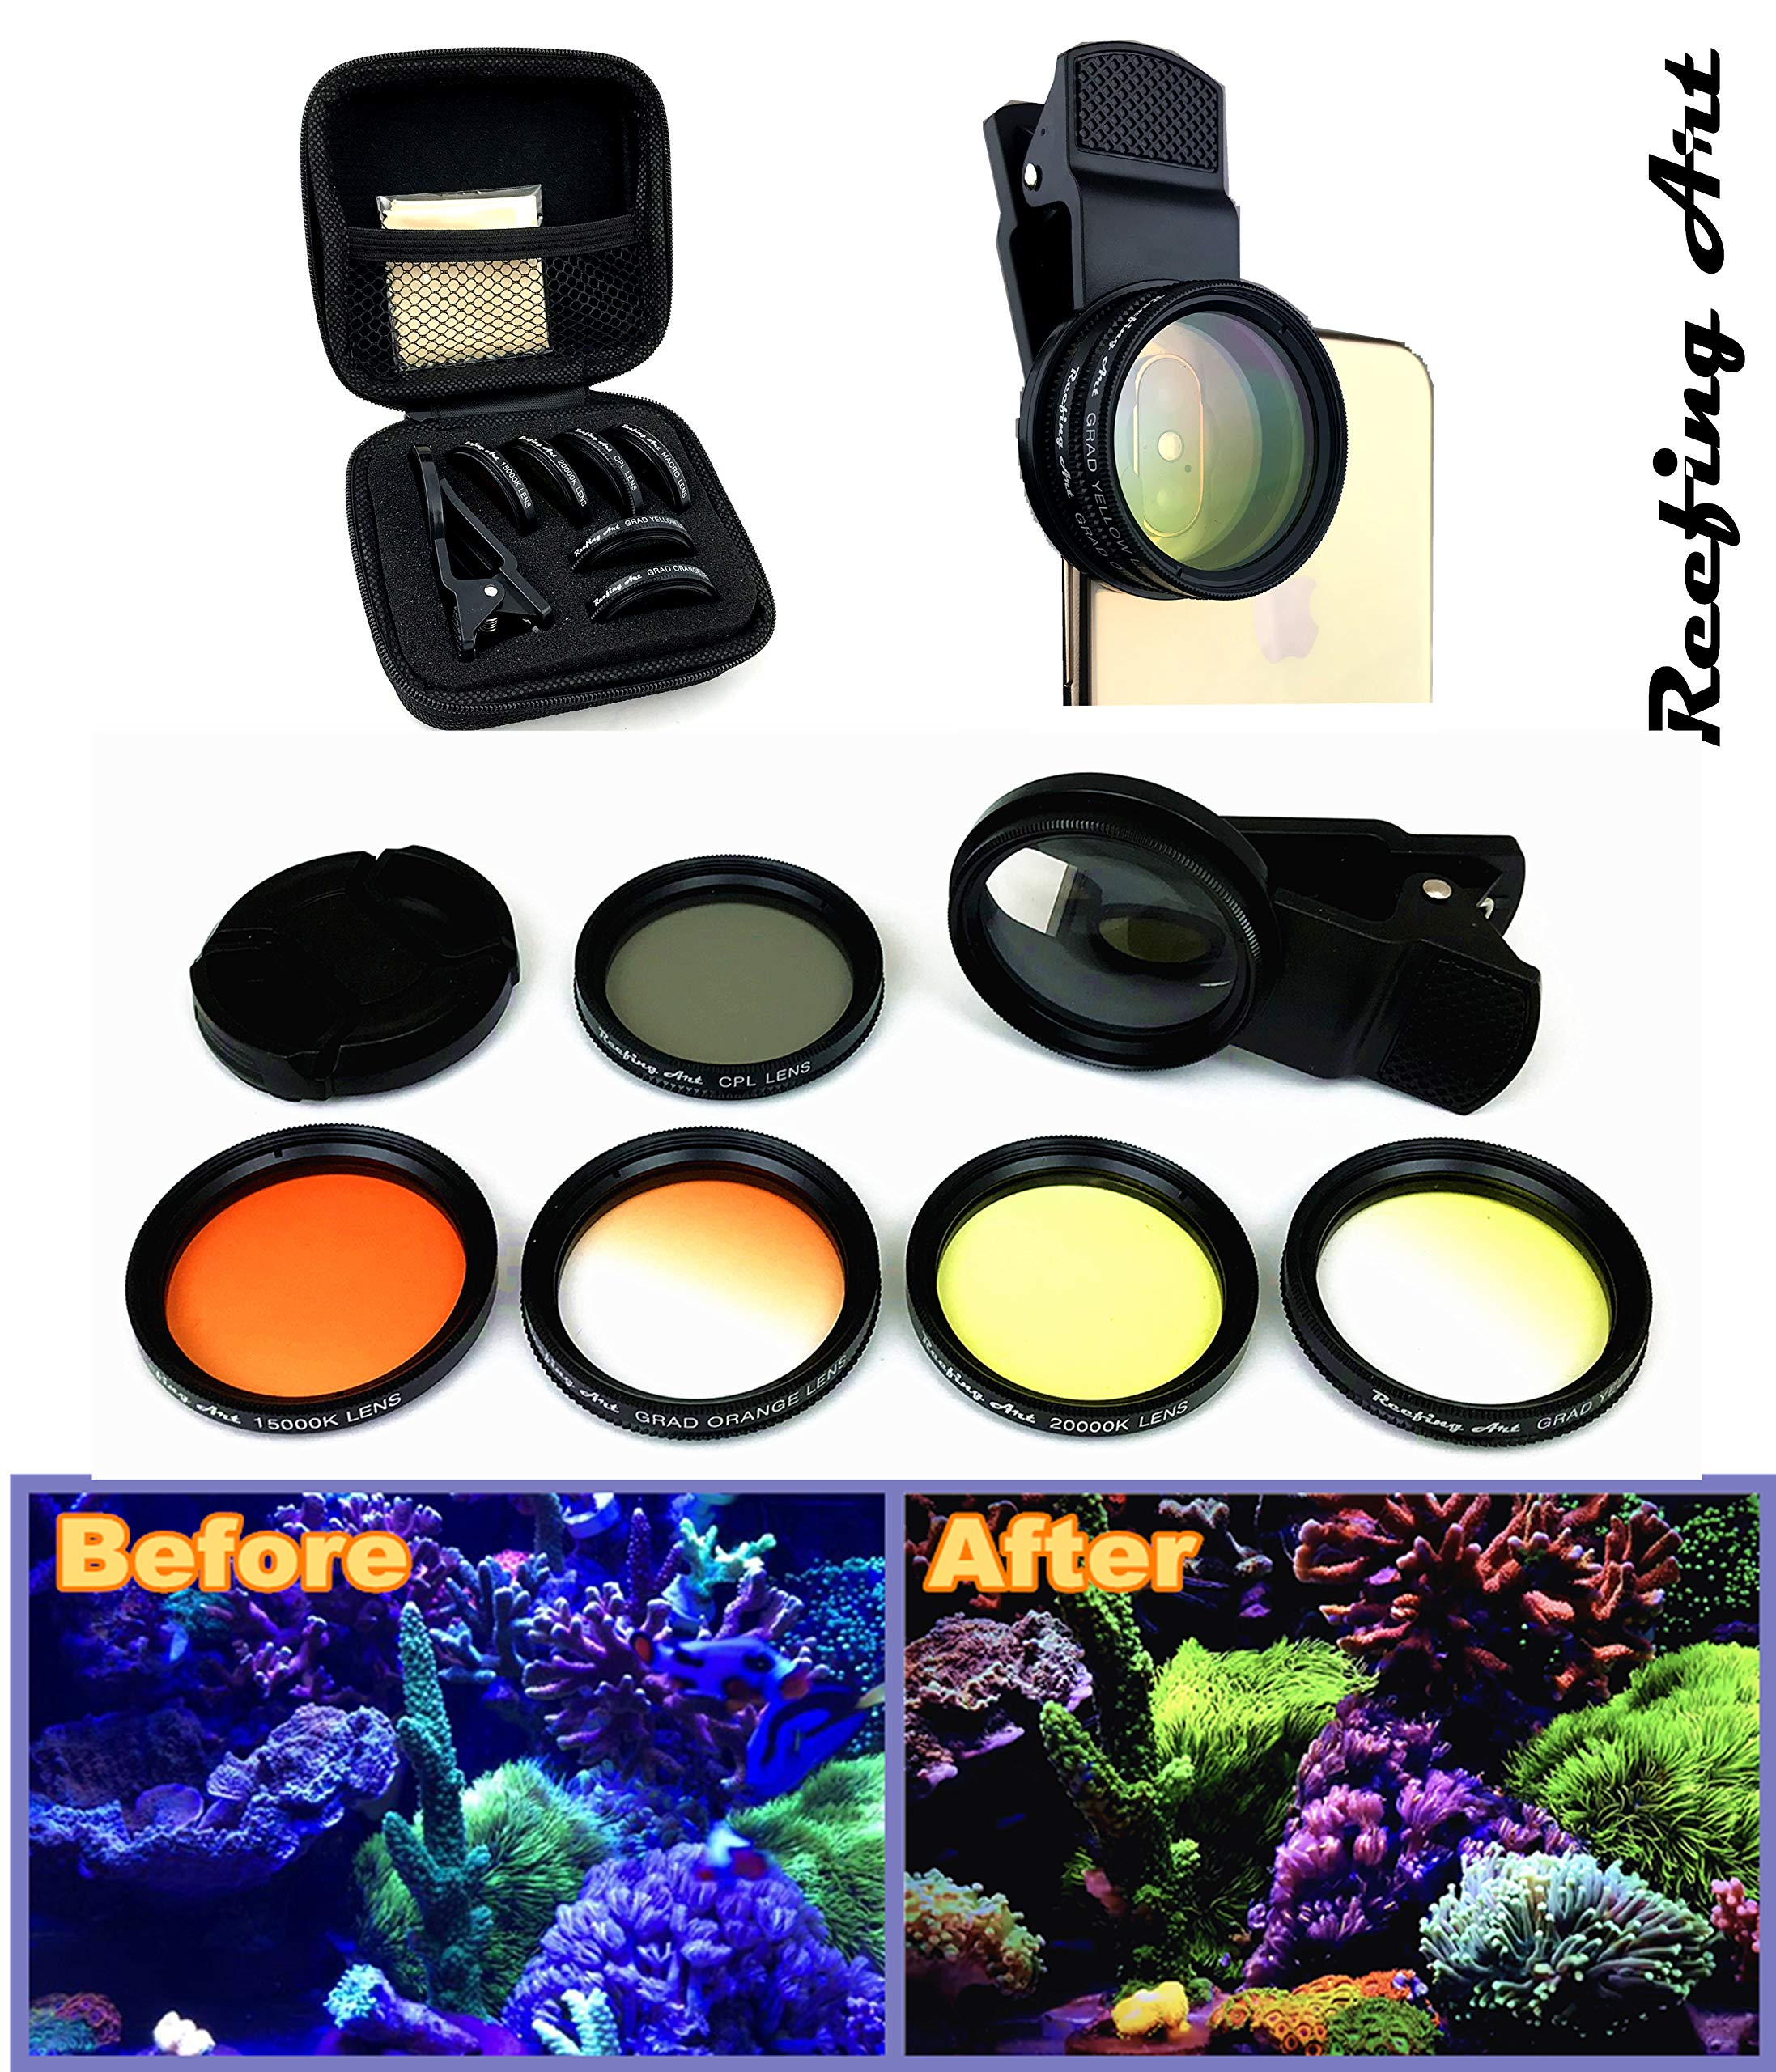 Reefing Art Coral Lens Professional Photography 6Lenses Kit frag Rack Aquarium